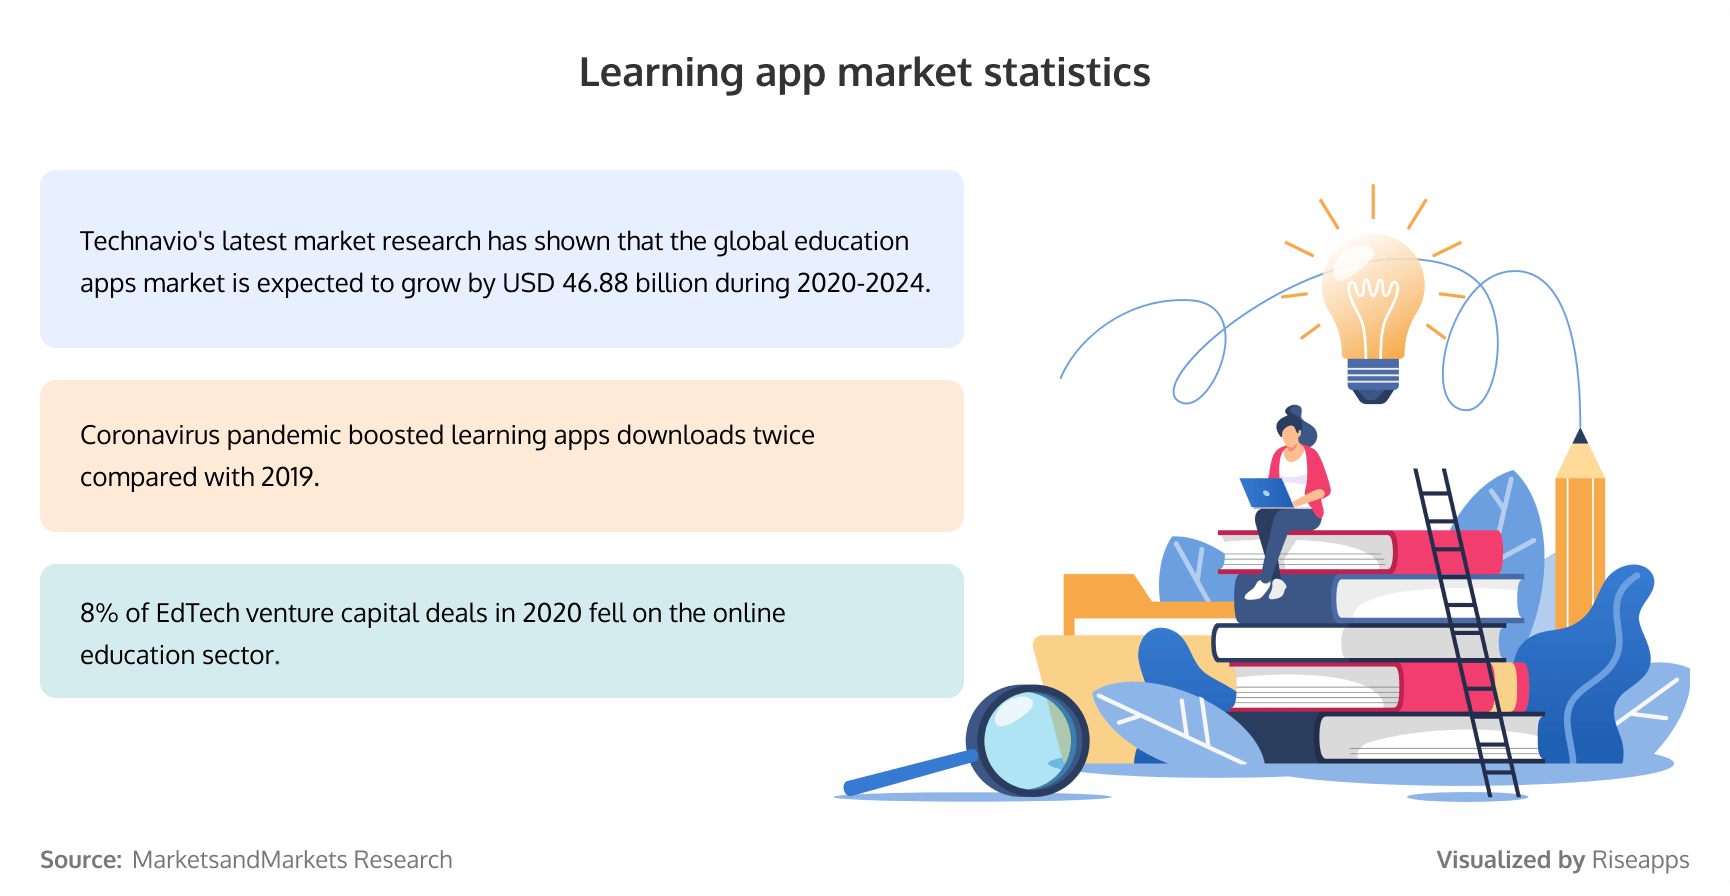 Reasons to build a learning app